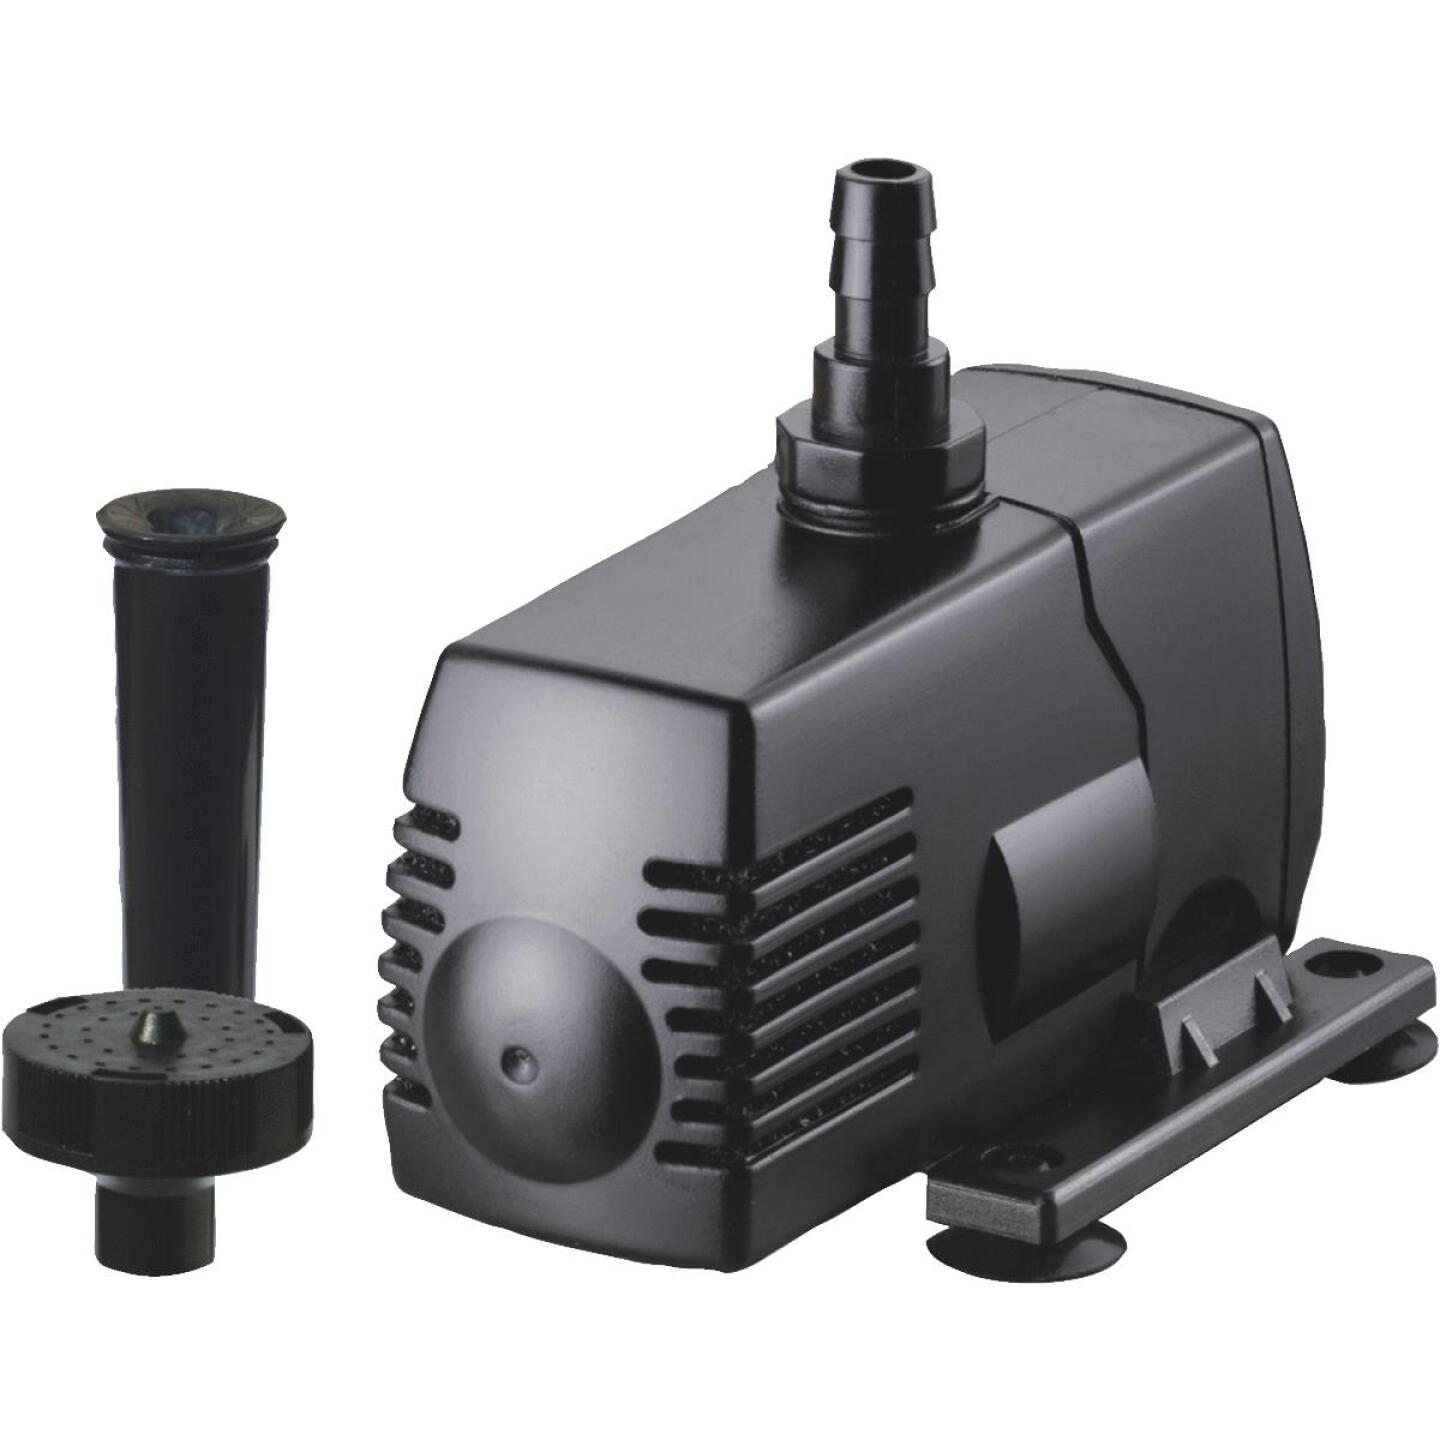 PondMaster Eco 225 GPH 3/4 In. Pond Pump & Fountain Head Kit Image 1